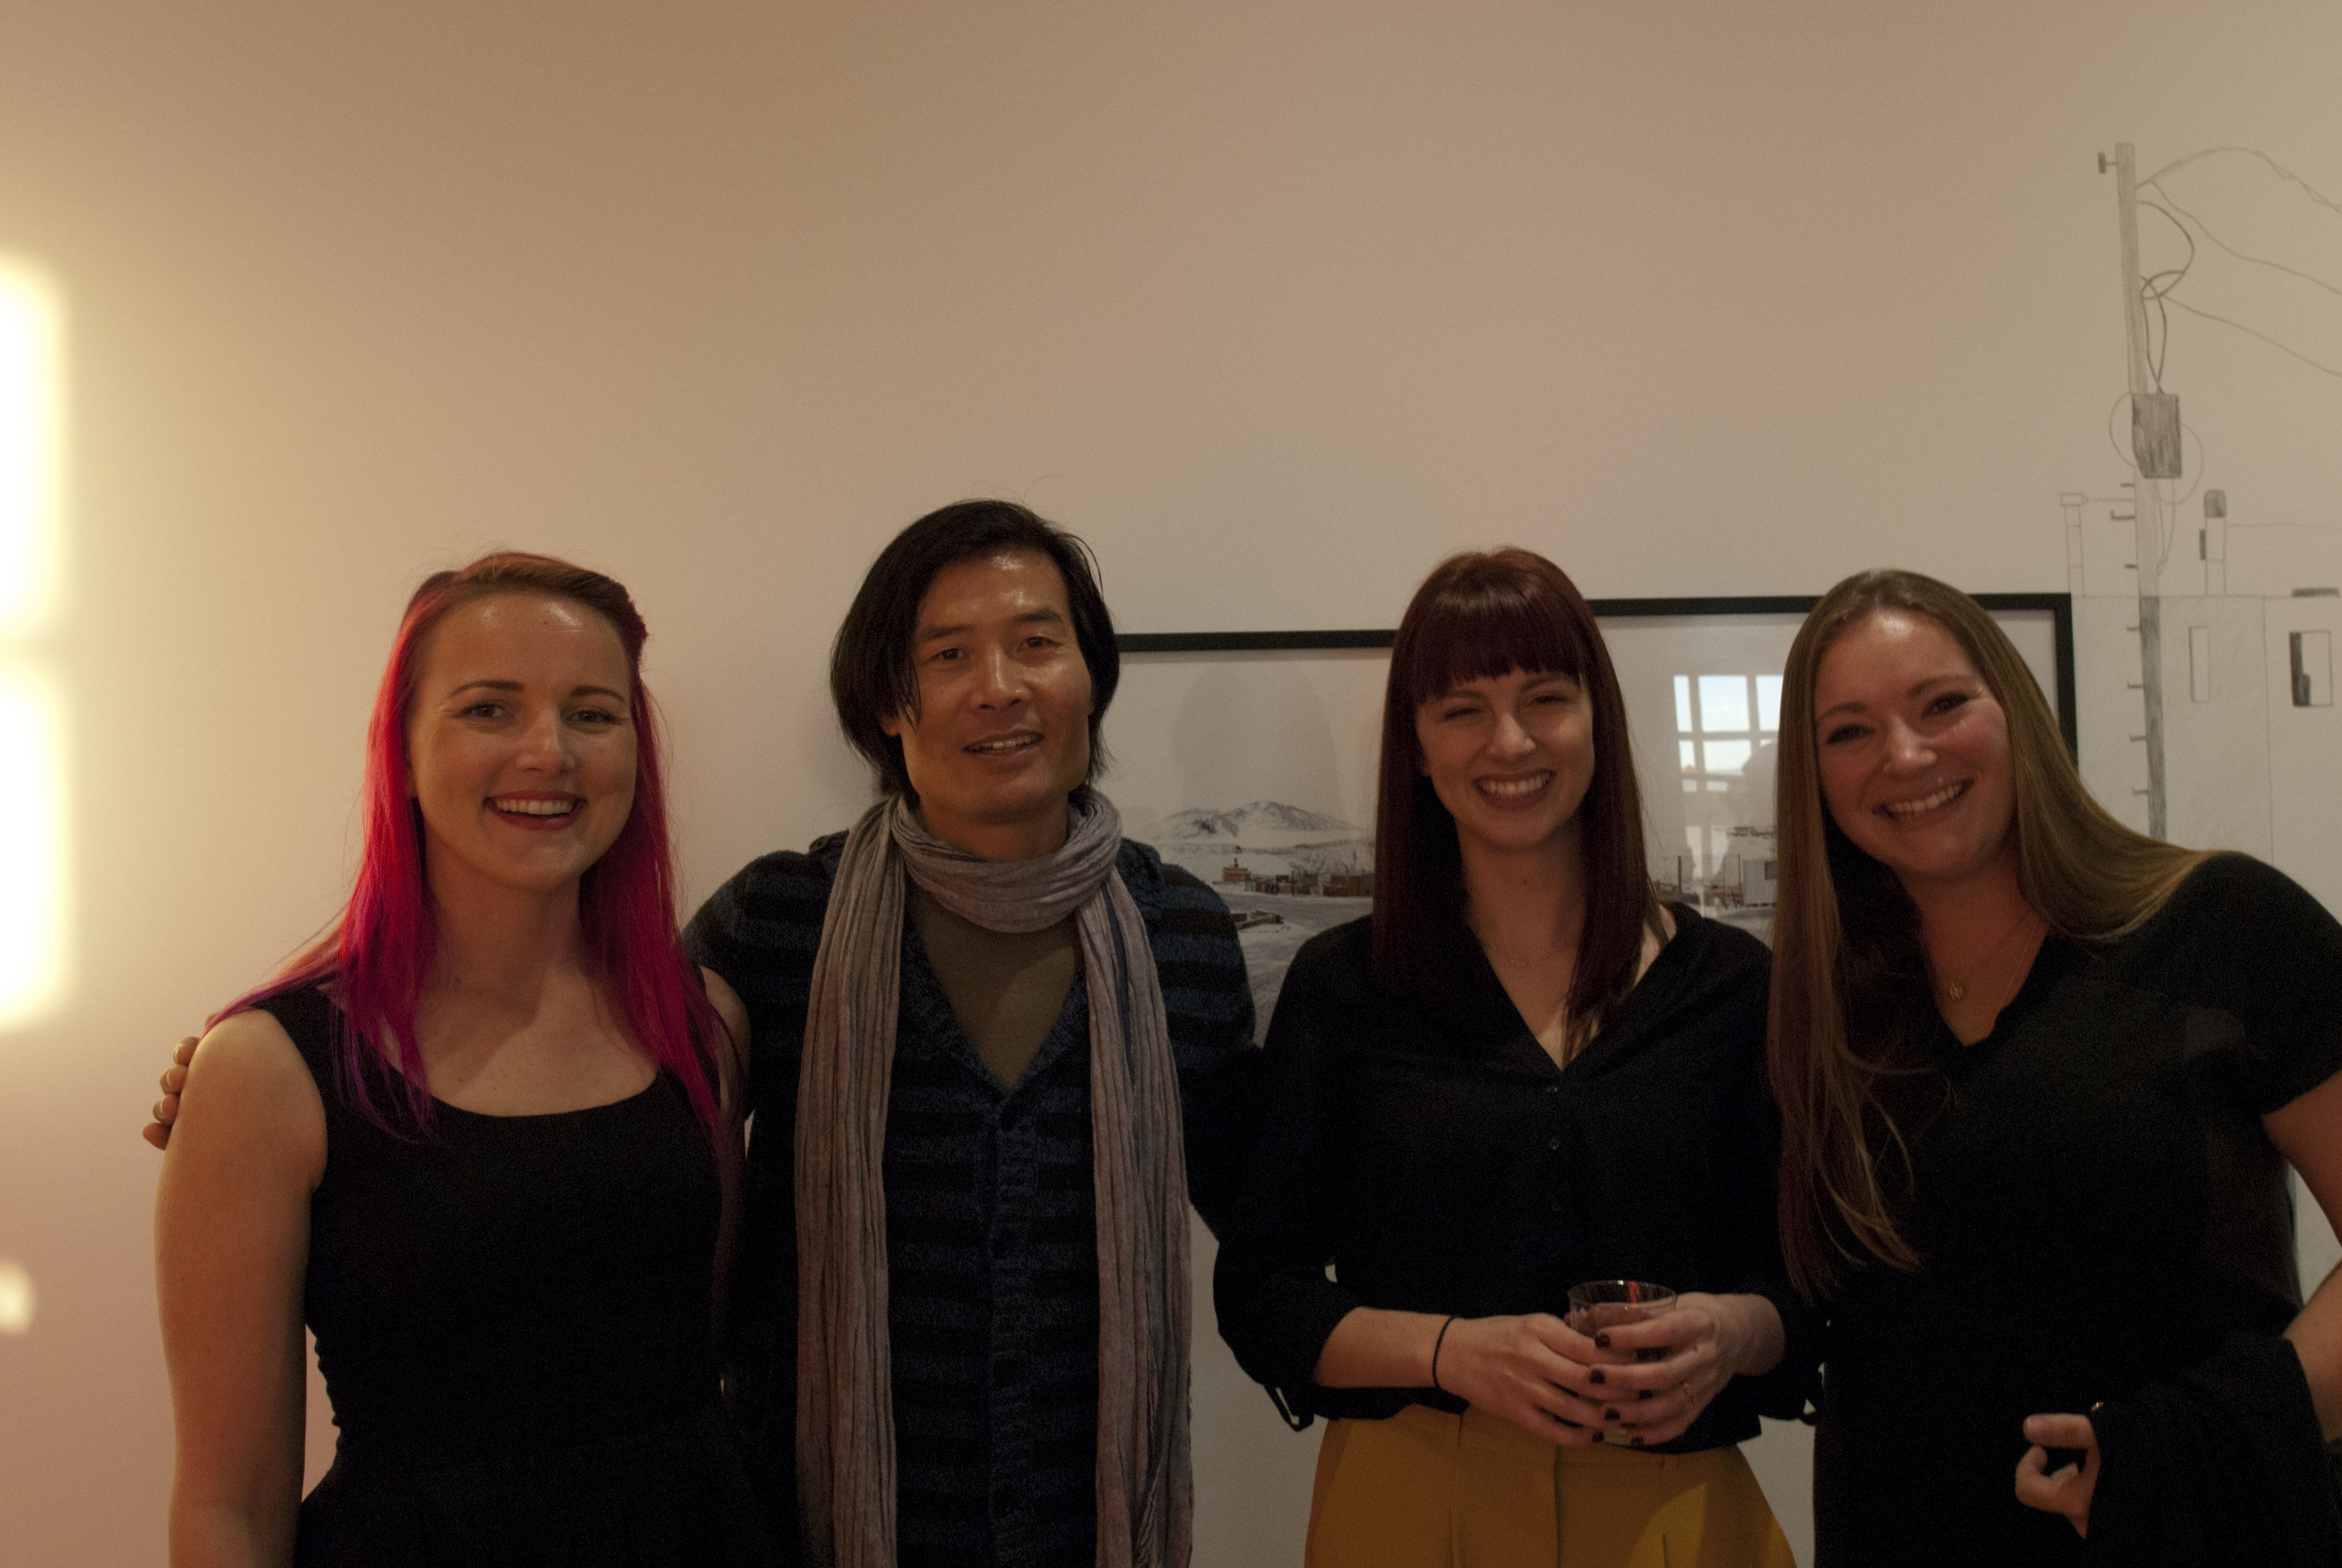 The Embark Gallery team, Carolyn Nickell, Angelica Jardini and Tania Houtzager, share a laugh with juror for the exhibition and esteemed artist, Michael Zheng.